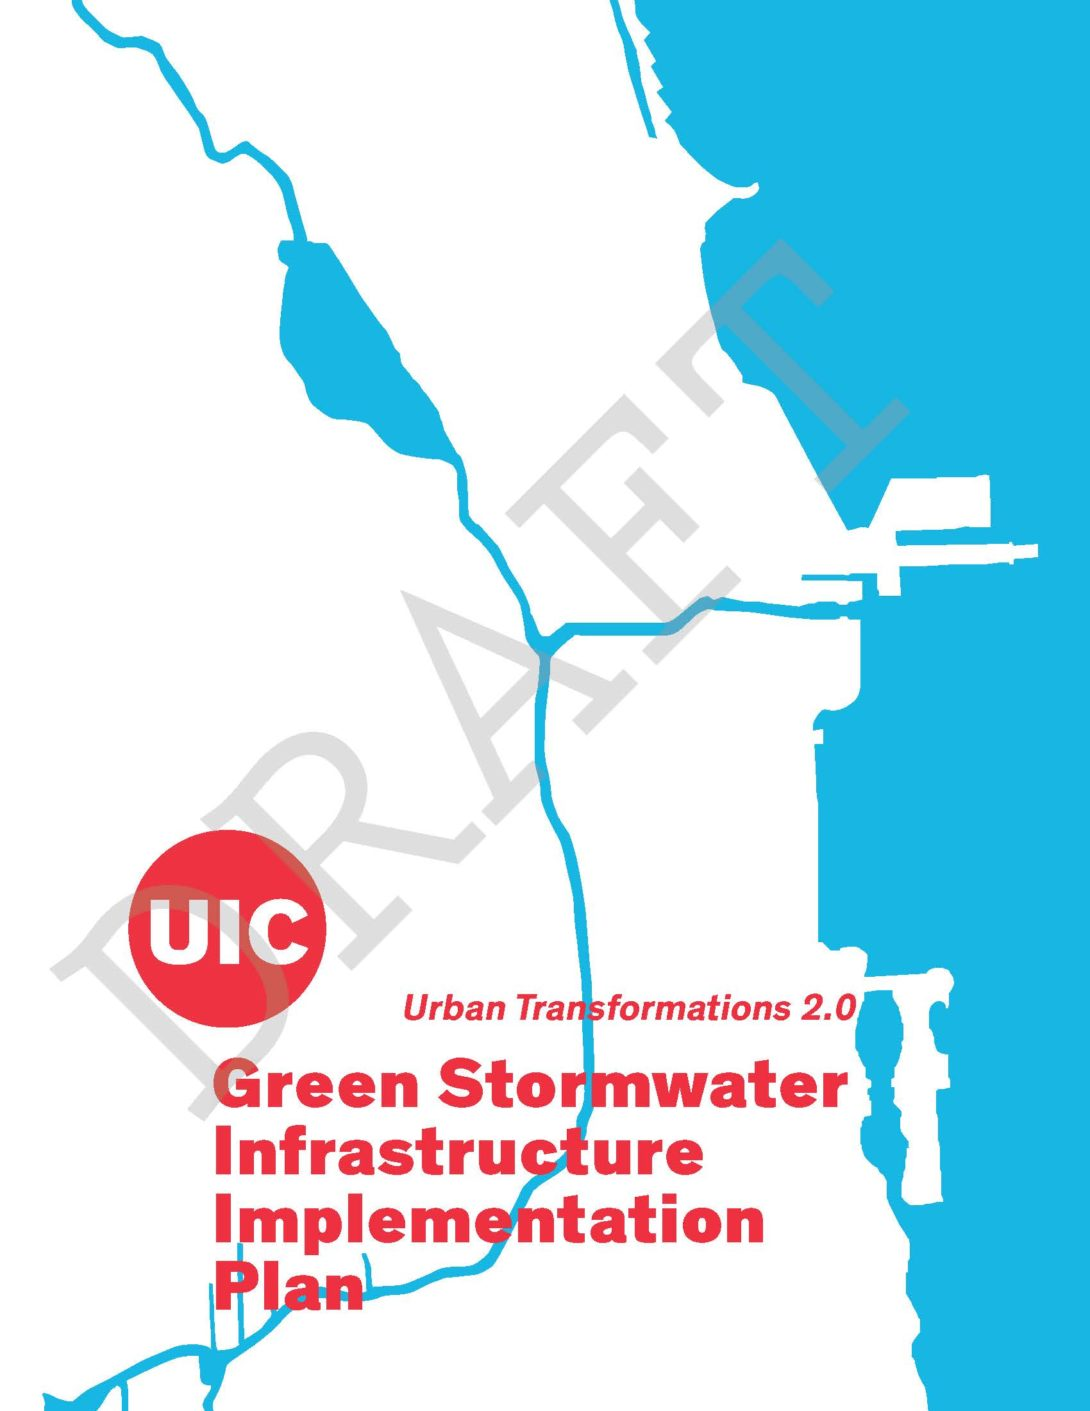 cover page of the stormwater plan- icon of the UIC logo overlaying a rough map of Chicago's waterways- the Chicago River and Lake Michigan